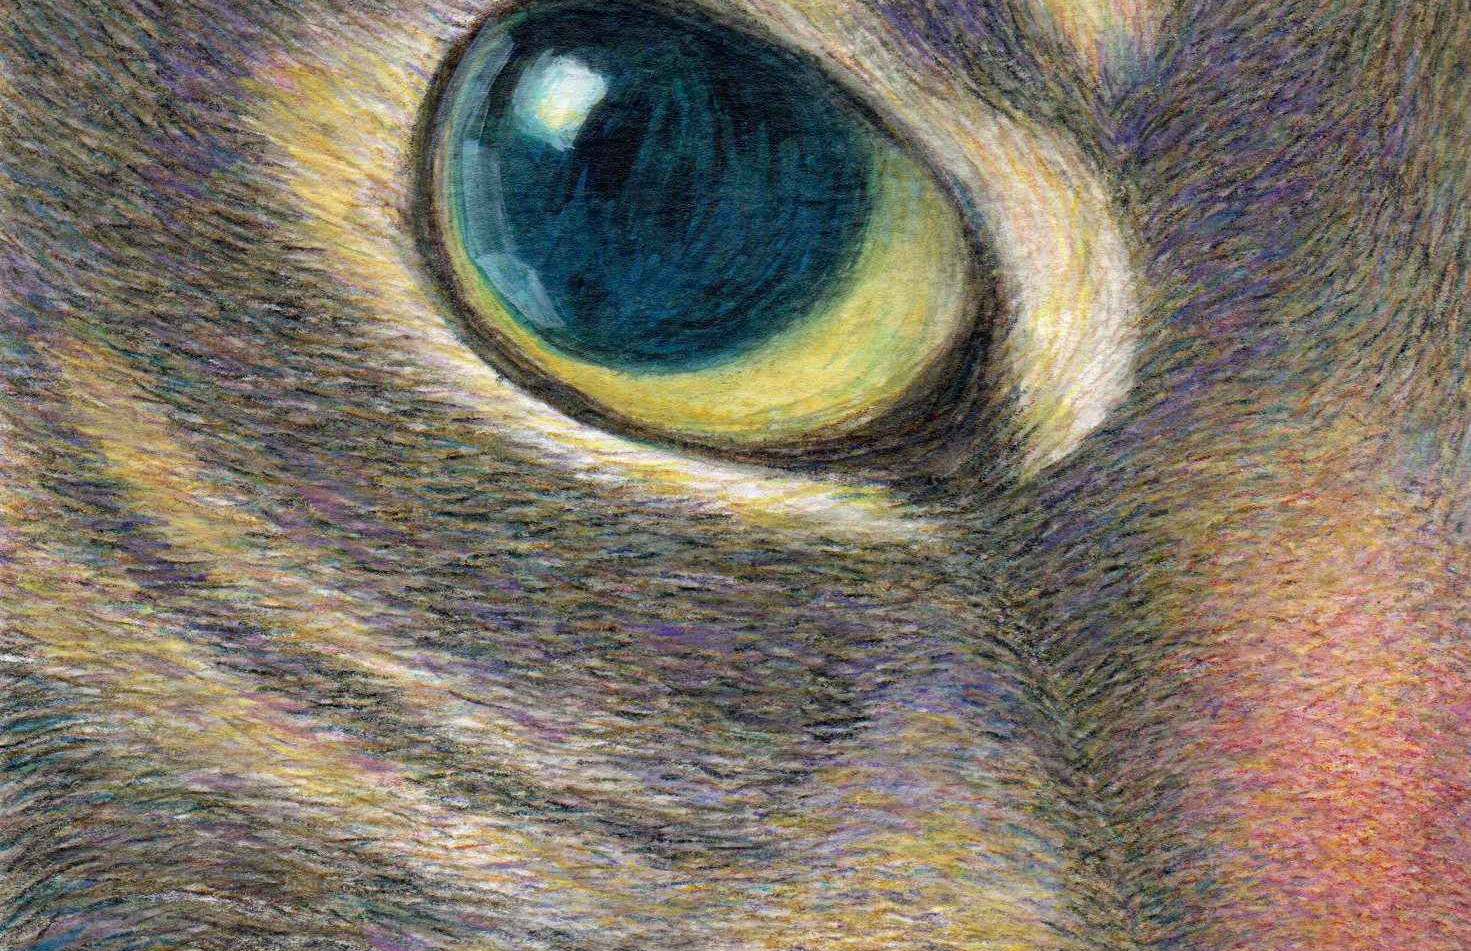 511 - A Cat With Smart Eyes